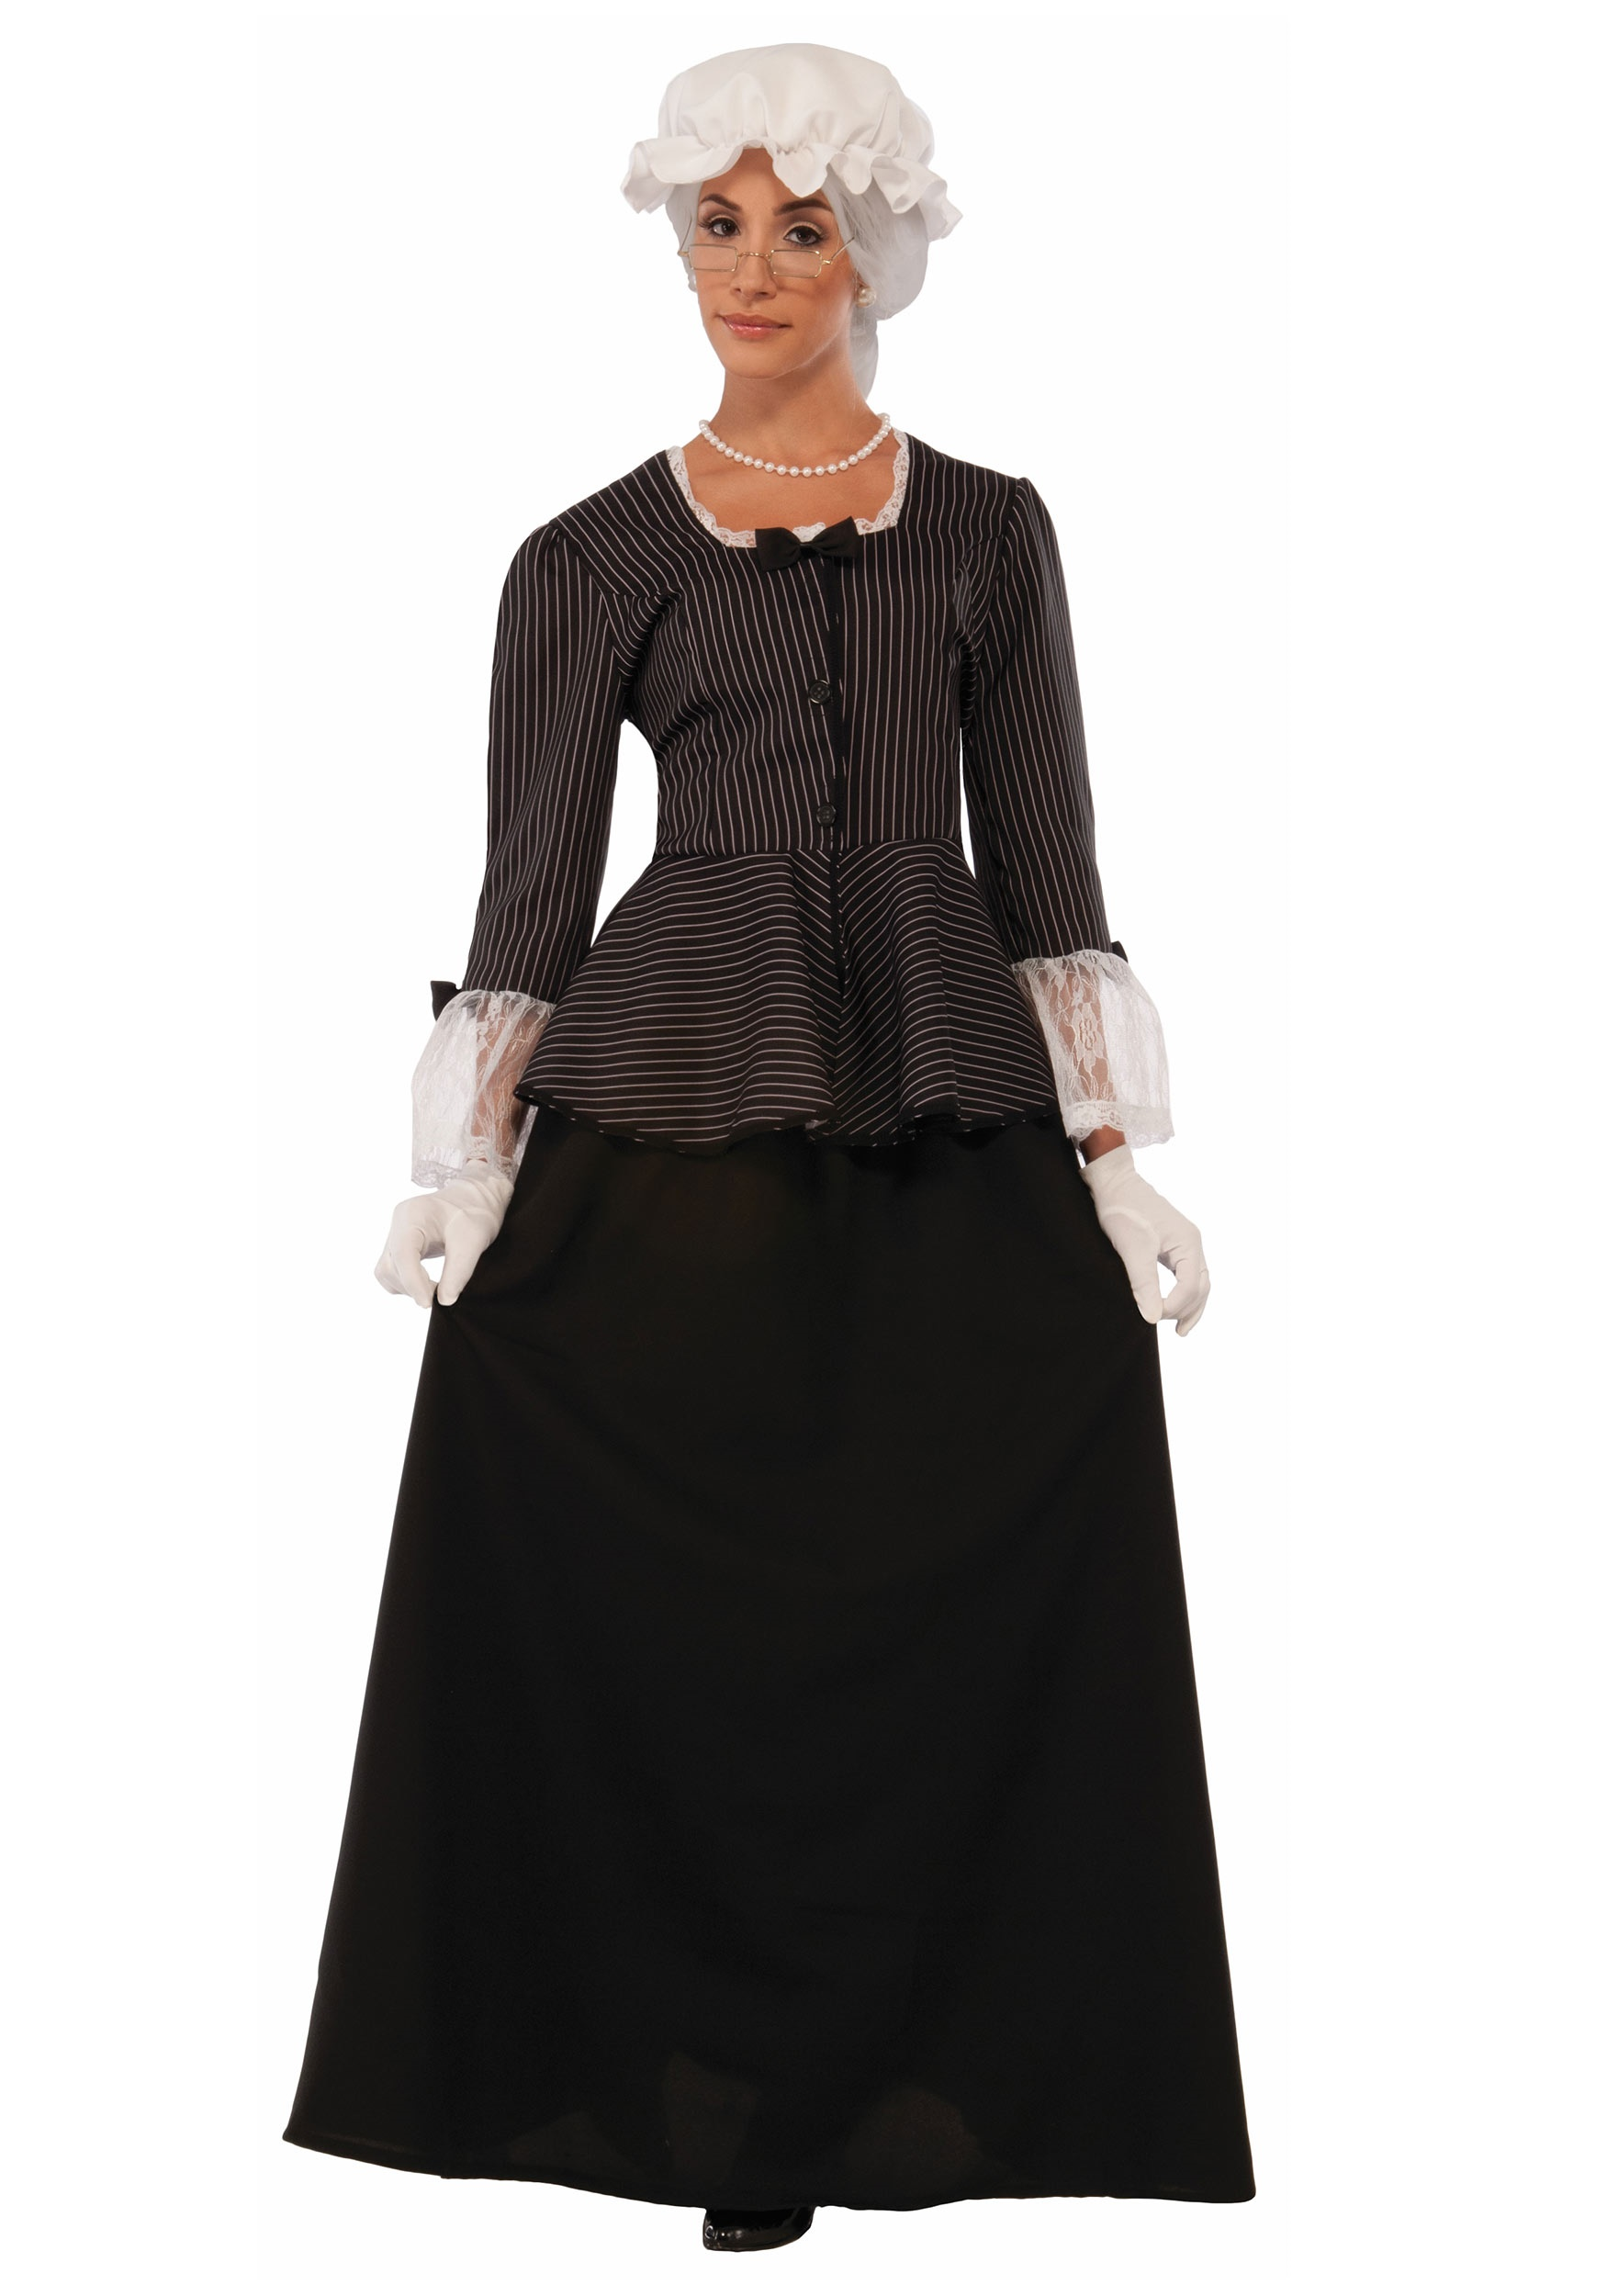 womens martha washington costume